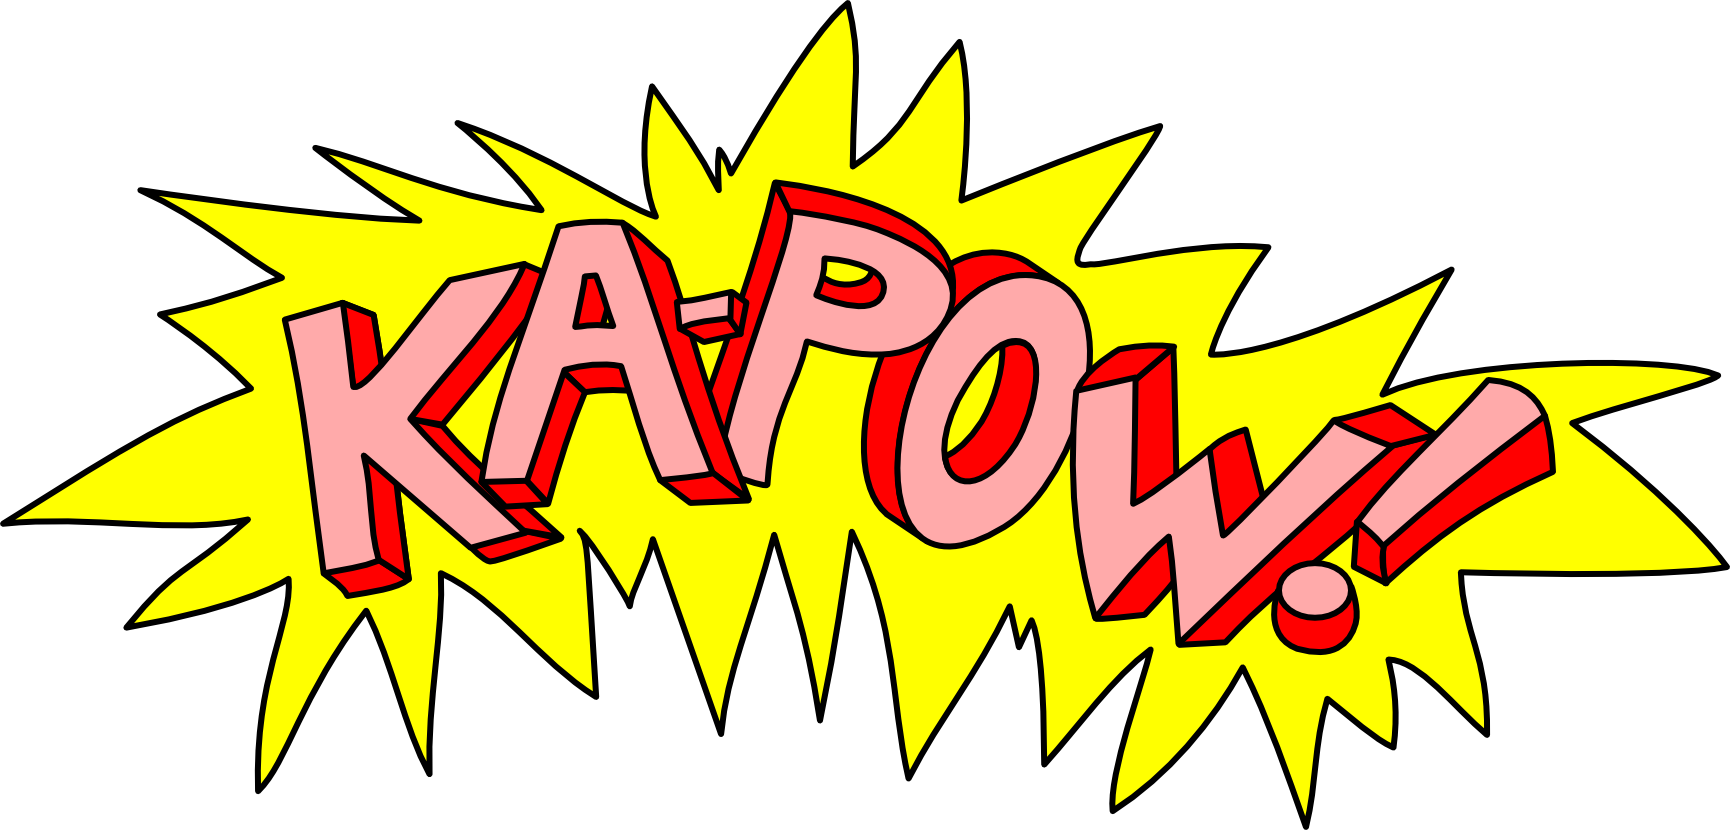 http://kapowband.files.wordpress.com/2010/08/kapow-logo-web11.png